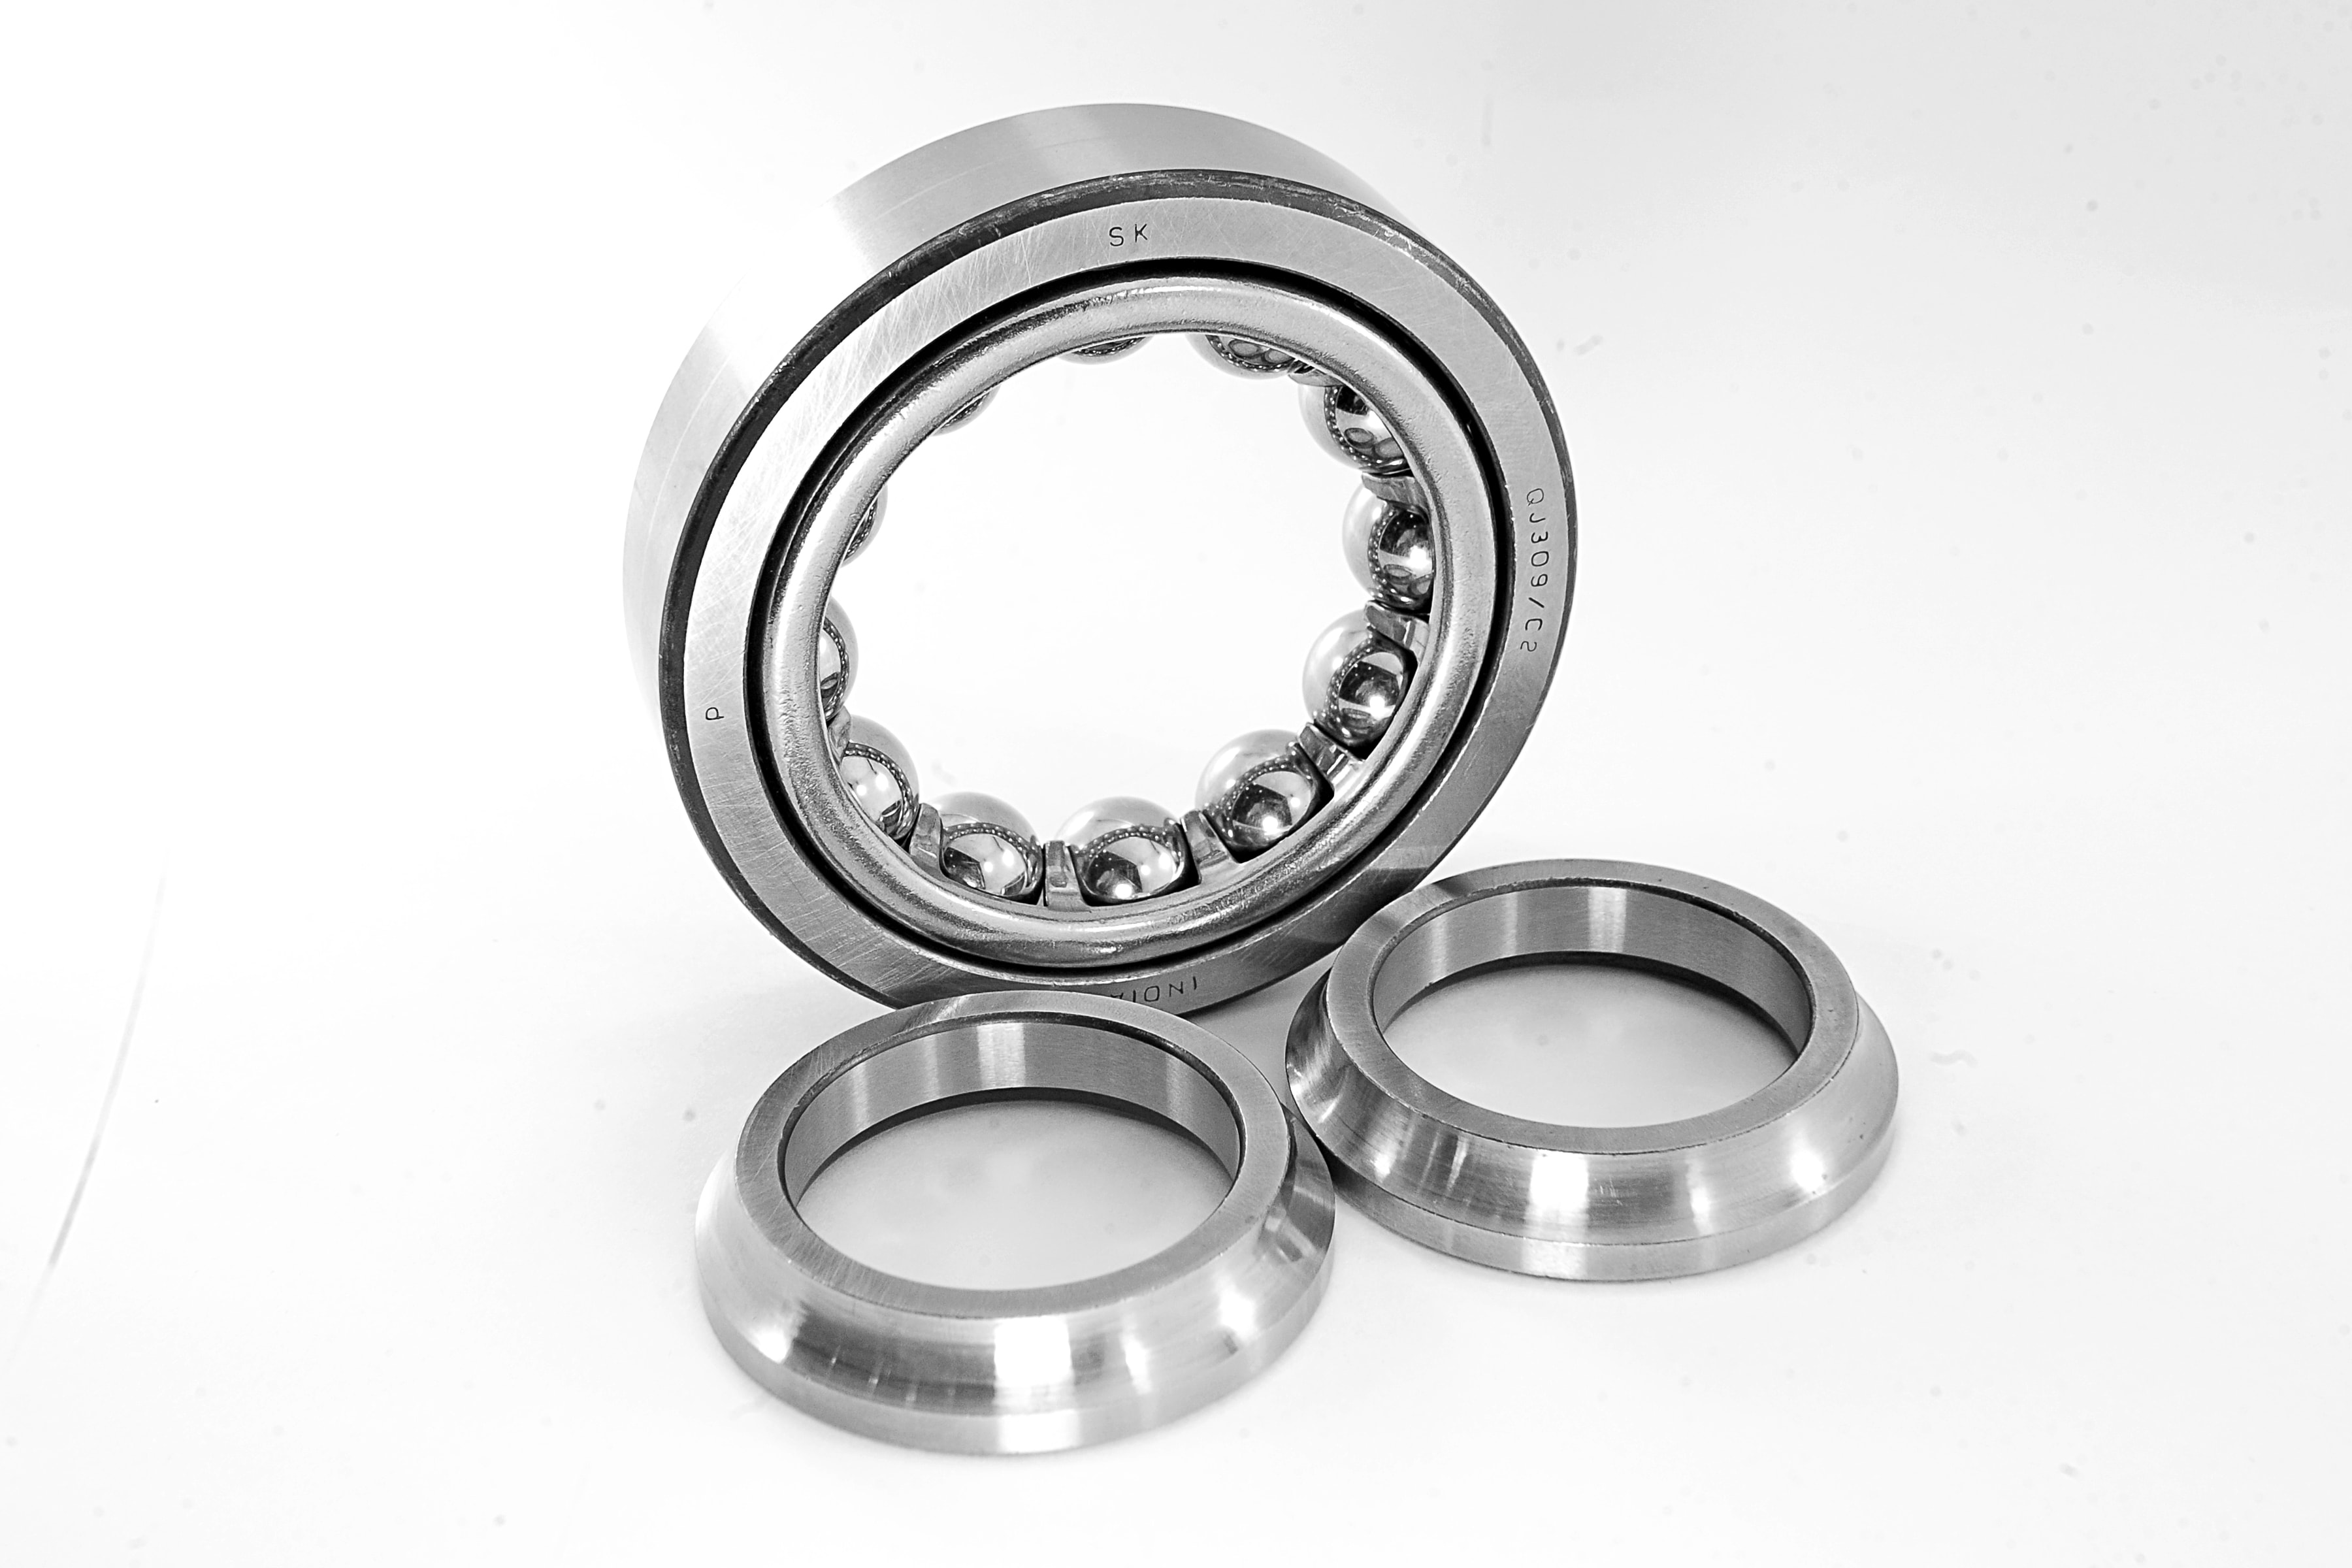 FOUR POINT BEARINGS